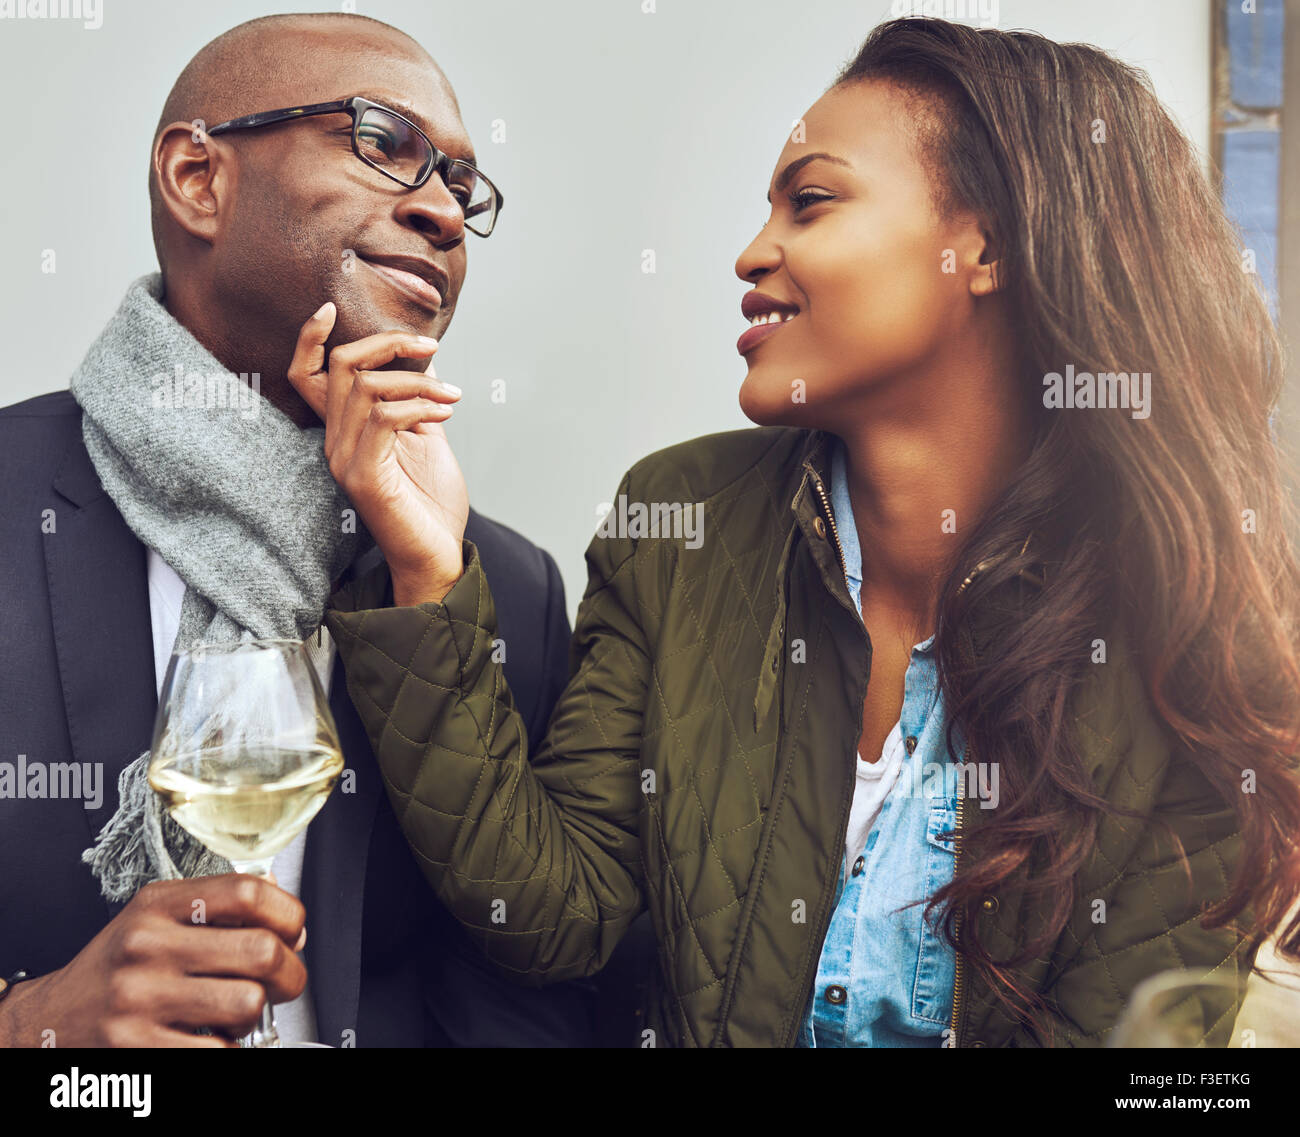 Black Couple avoir un bon temps sur un café au printemps Photo Stock